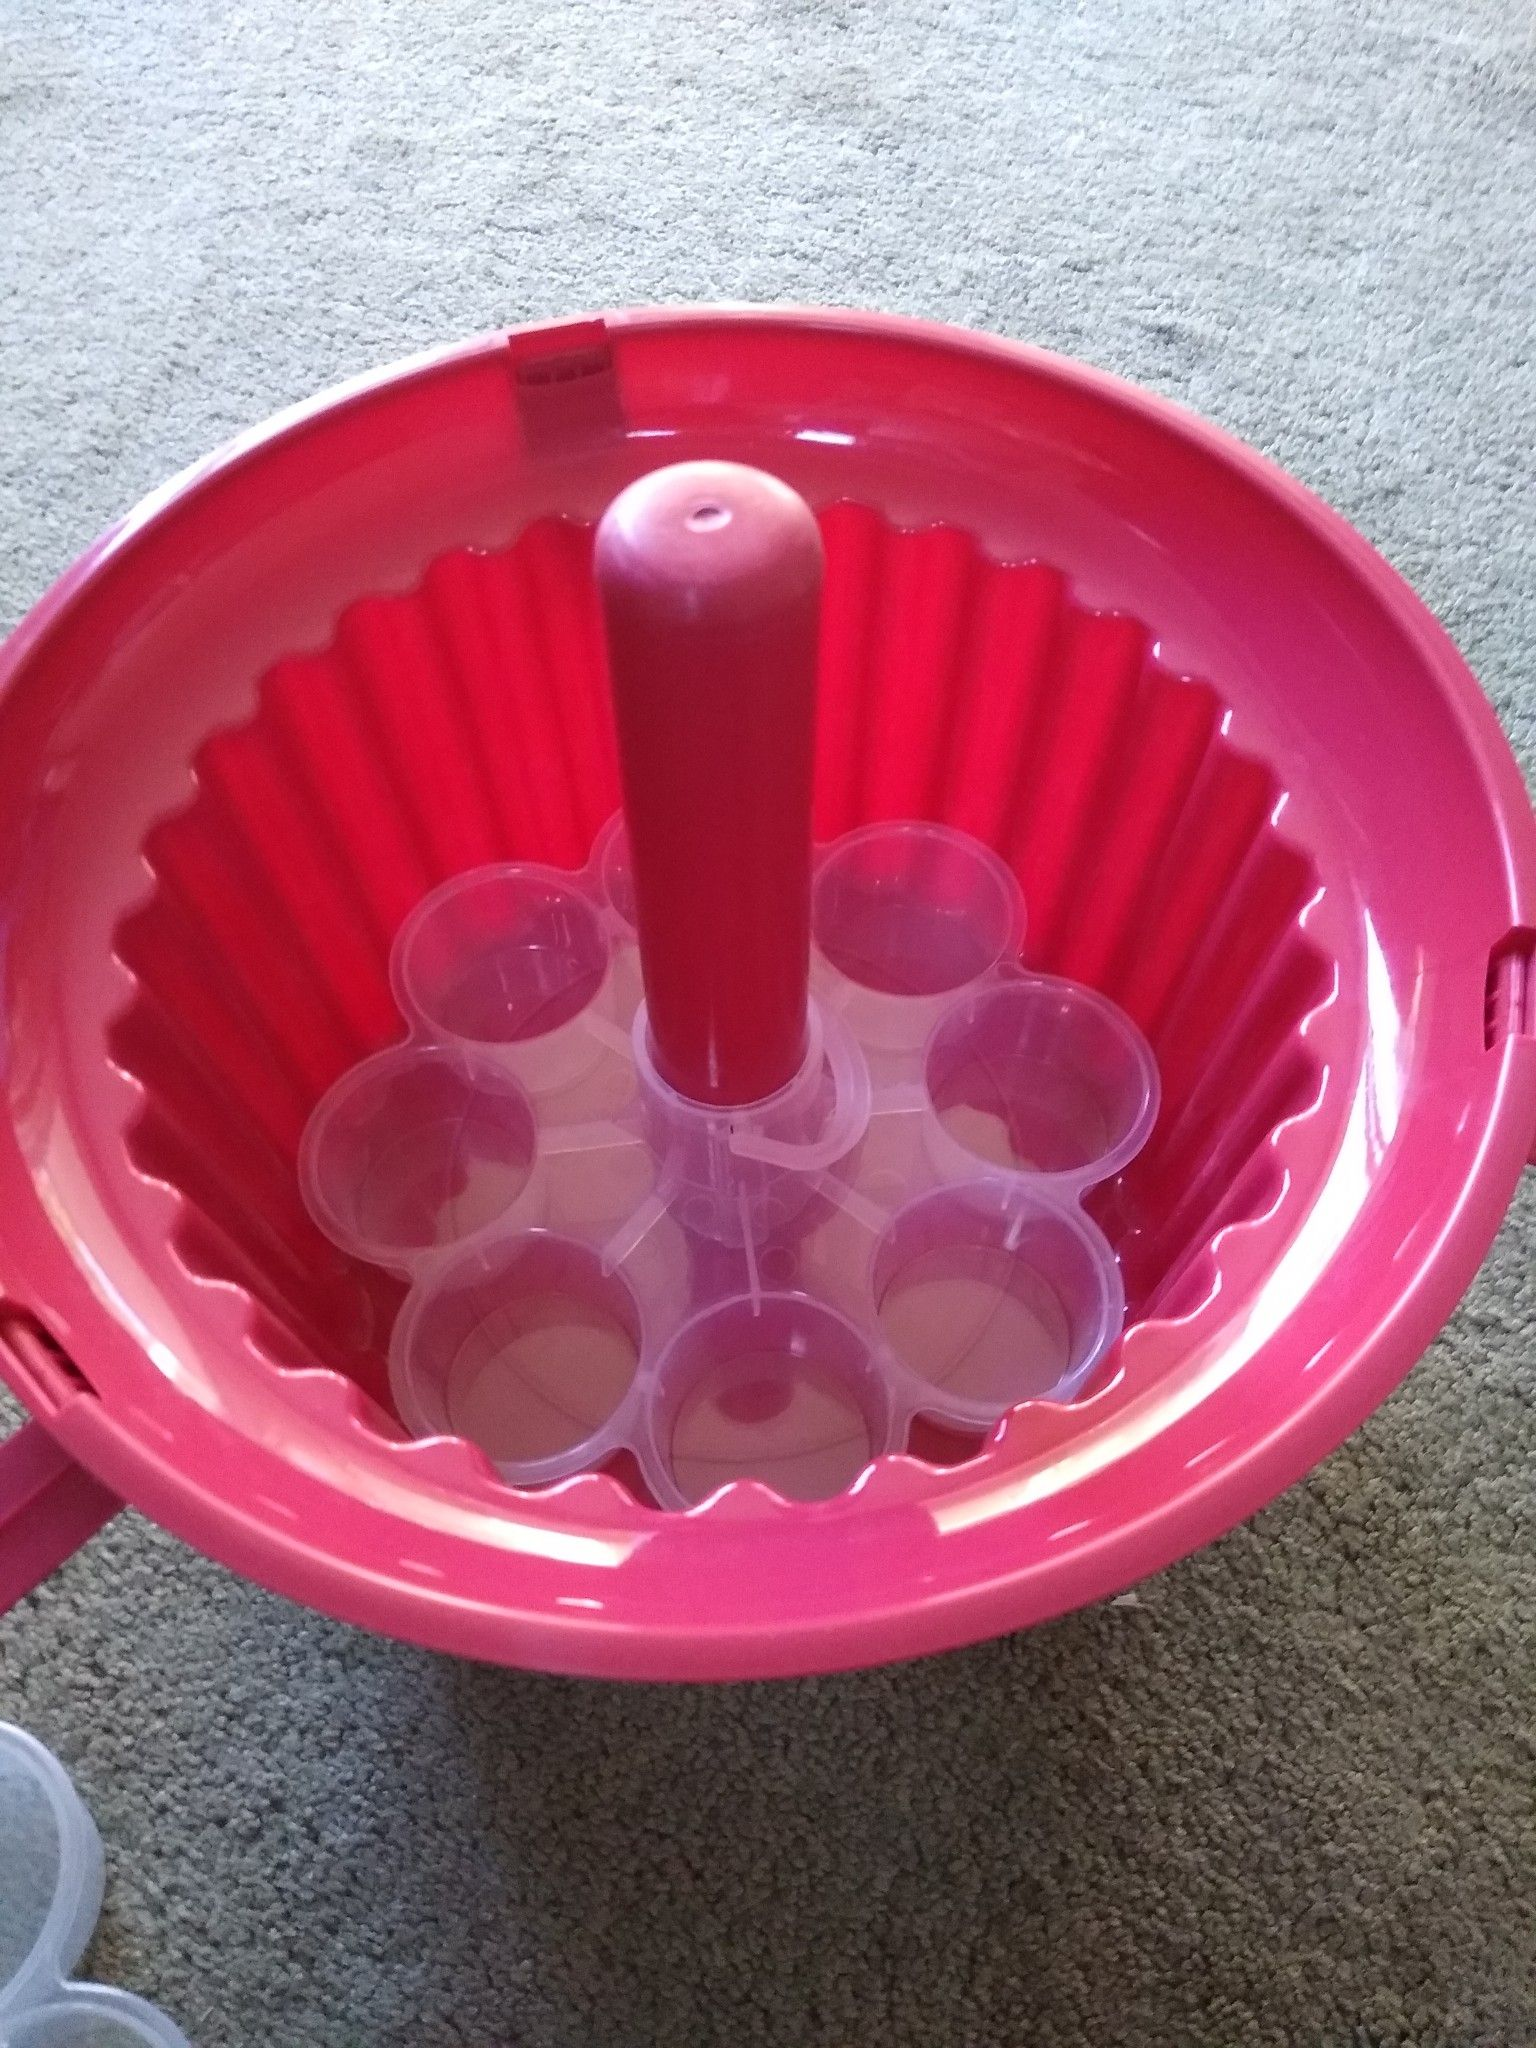 🧁🧁🧁**NEW** (24) CUPCAKE 🧁🧁 HOLDER TRAY PLASTIC CARRIER TOTE SHAPE OF CUPCAKE DESSERT COOKING BAKING BAKE KITCHEN PARTYS EVENTS🧁🧁🧁